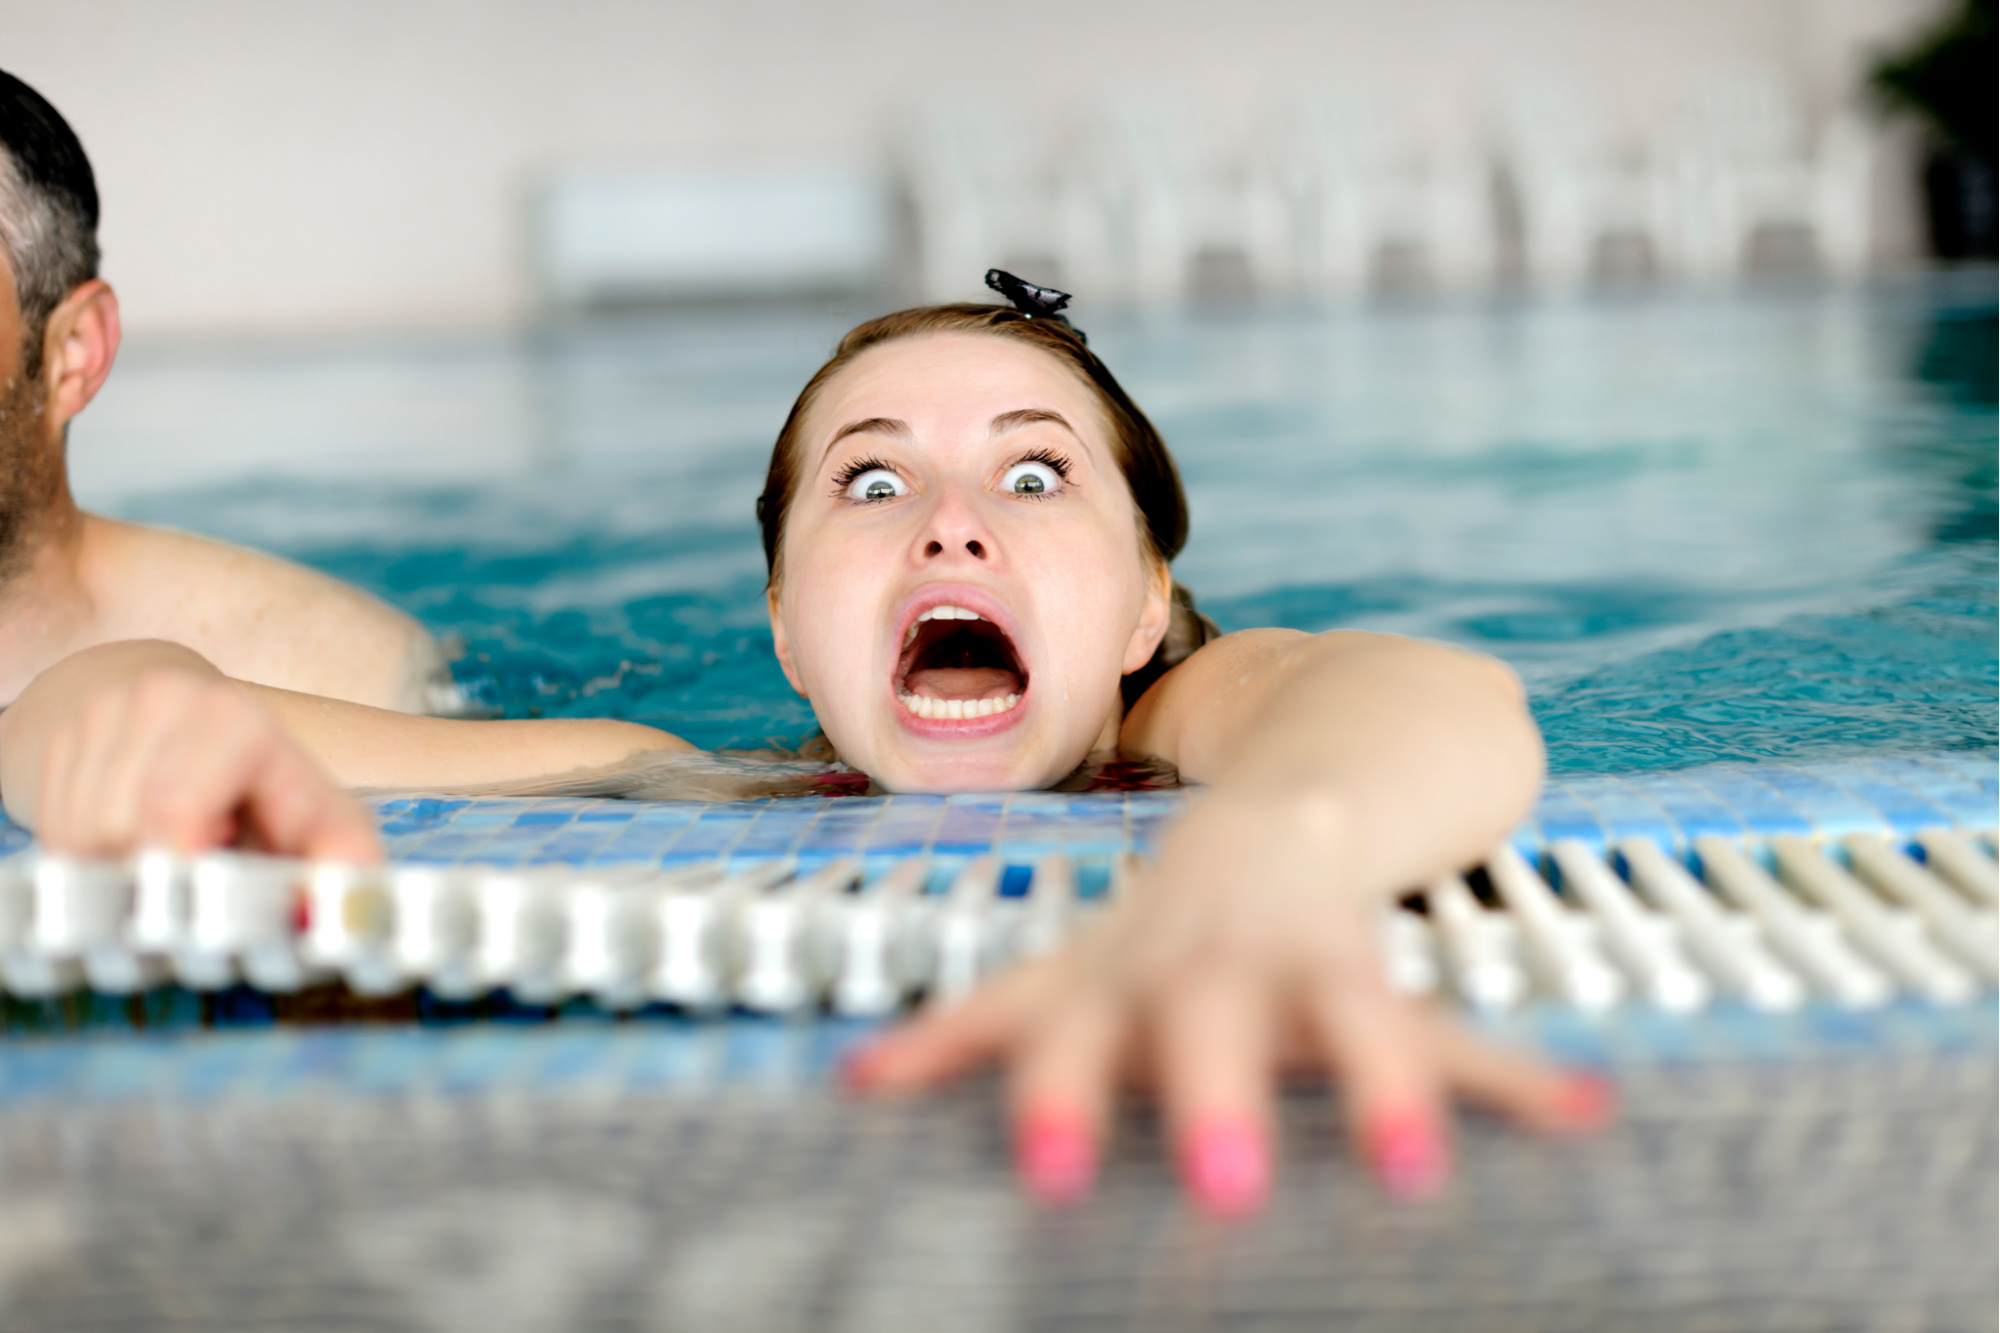 Woman drowning in swimming pool.